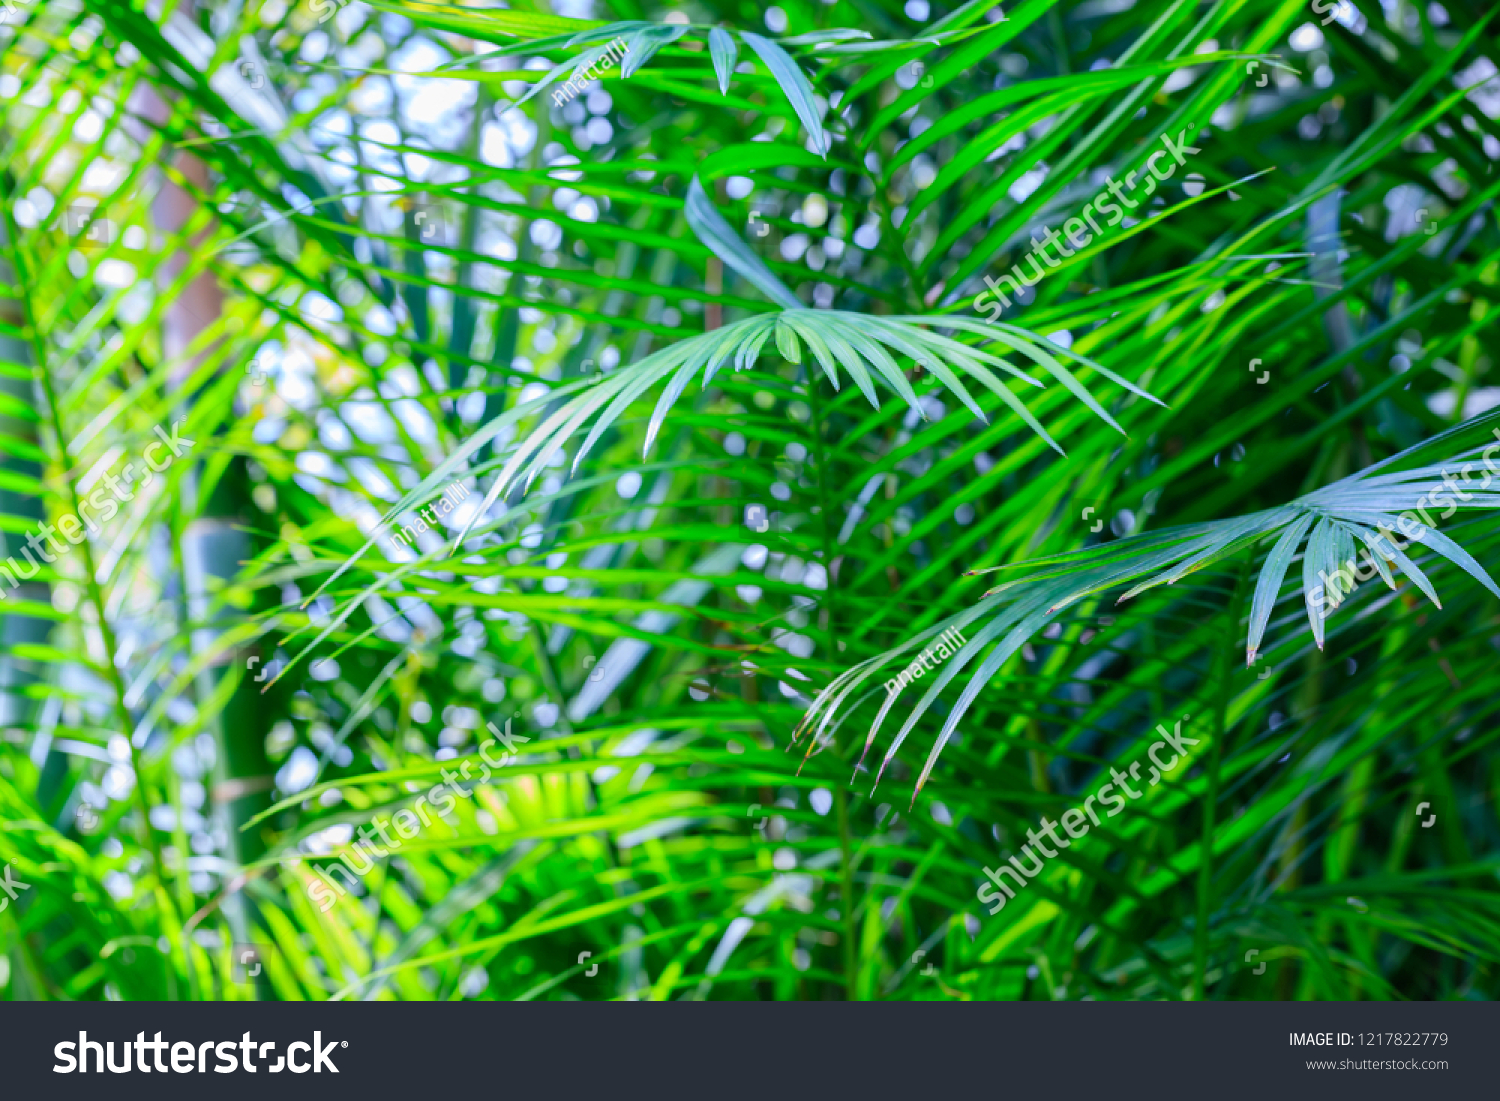 Butterfly Palm Madagascar Palm Areca Palm Chrysalidocarpus Green Palm Leaves Tropical Forest Dypsis Stock Photo Edit Now